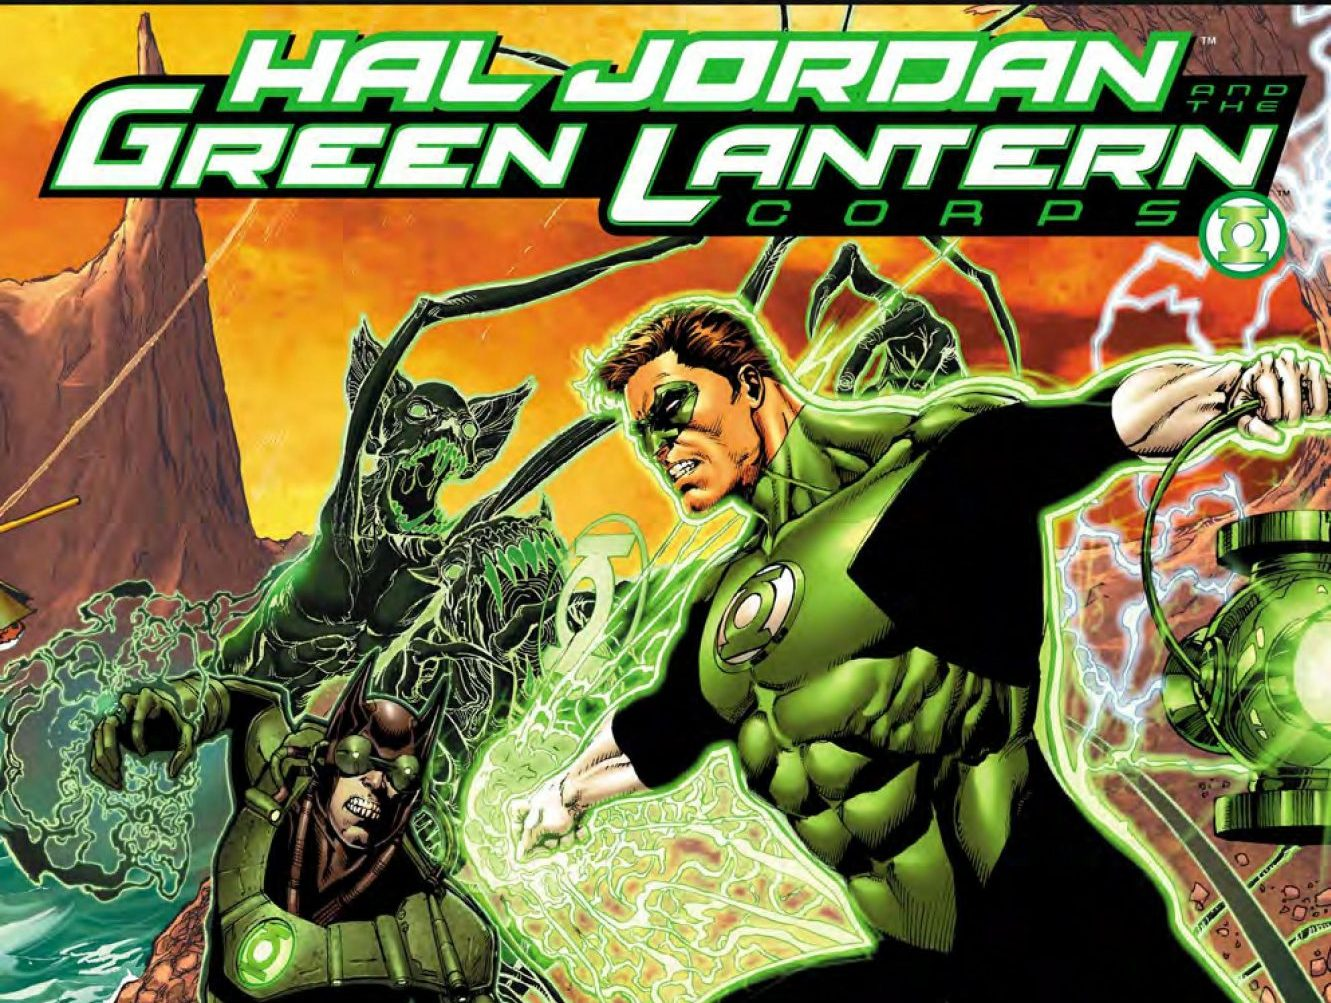 Hal Jordan and the Green Lantern Corps #32 review: 'Bats out of Hell' part three